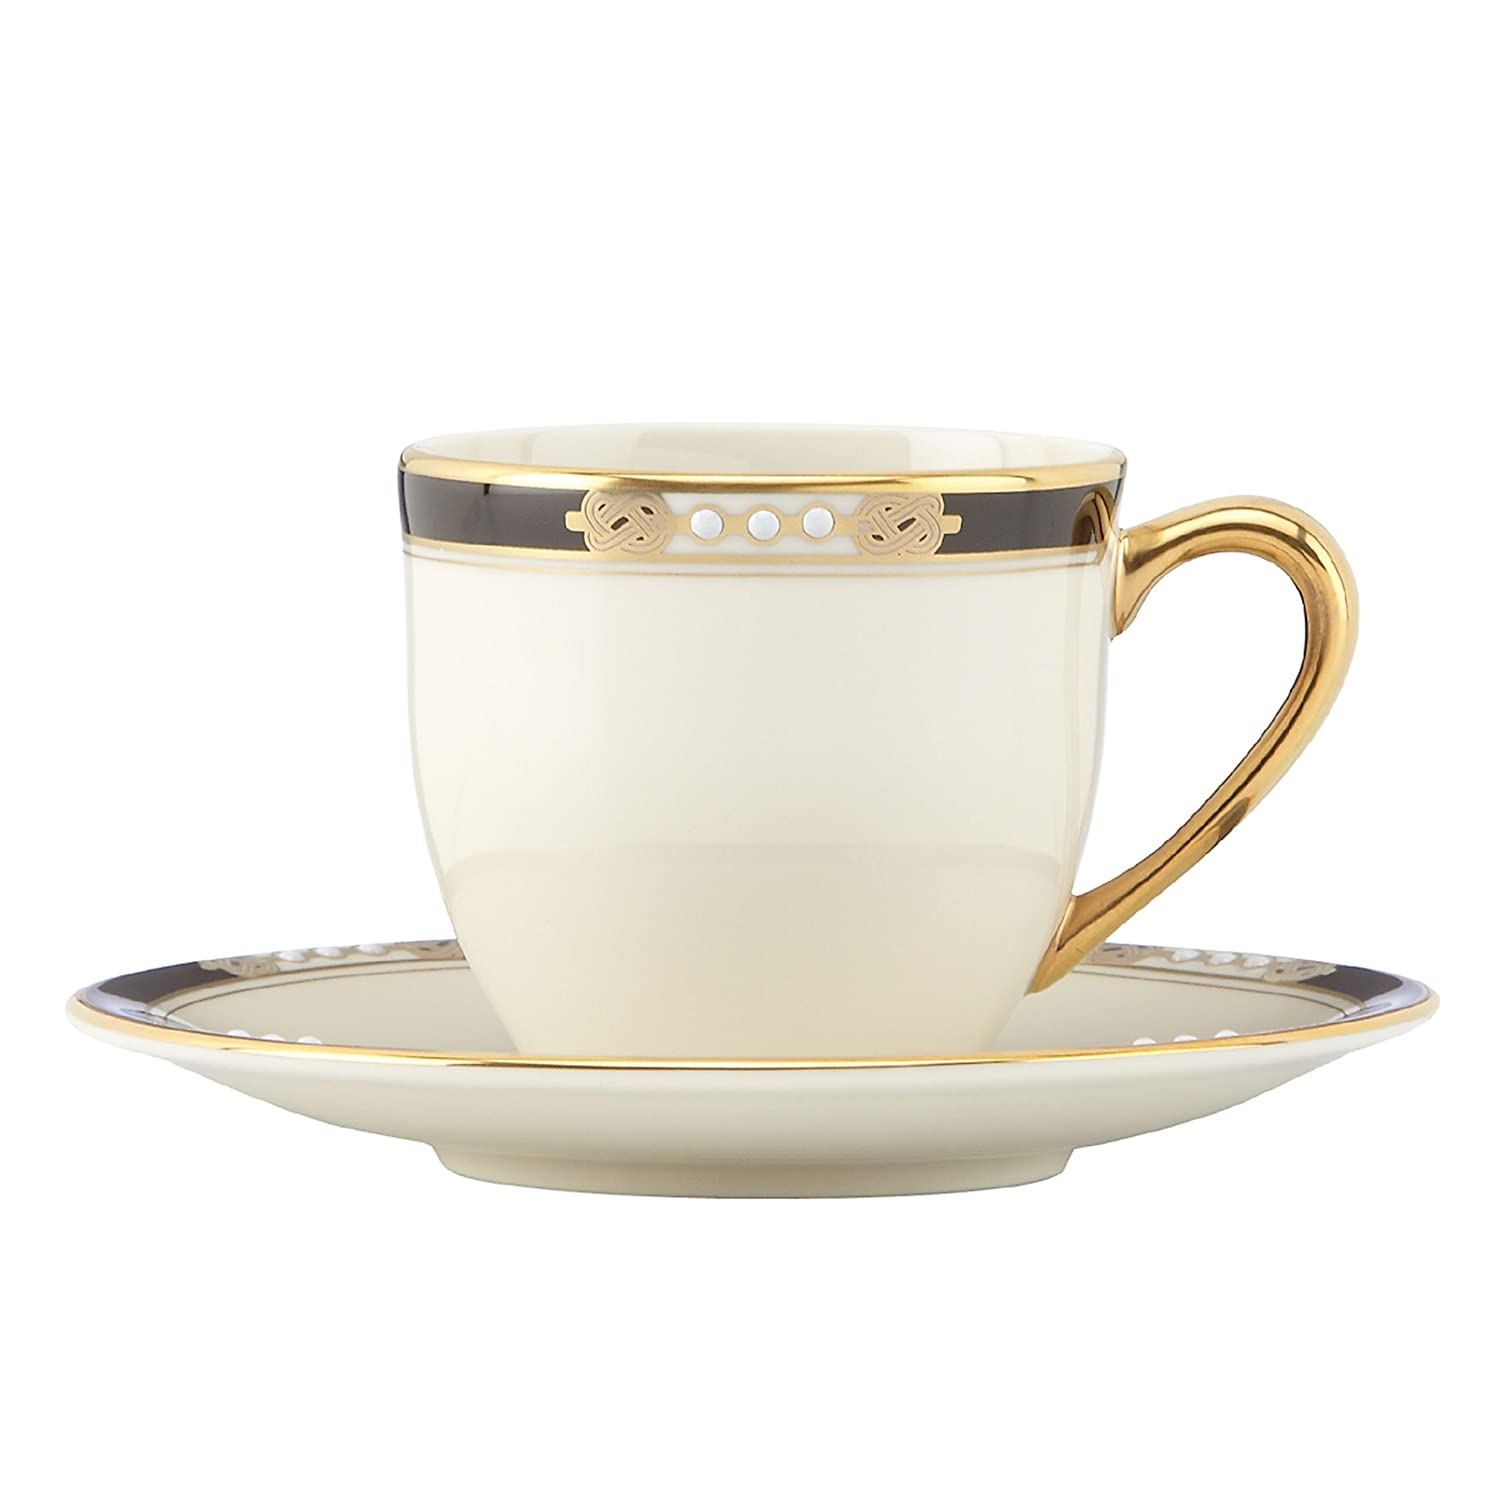 Lenox Hancock Fine China 5-Piece Place Setting, Service for 1 111490610